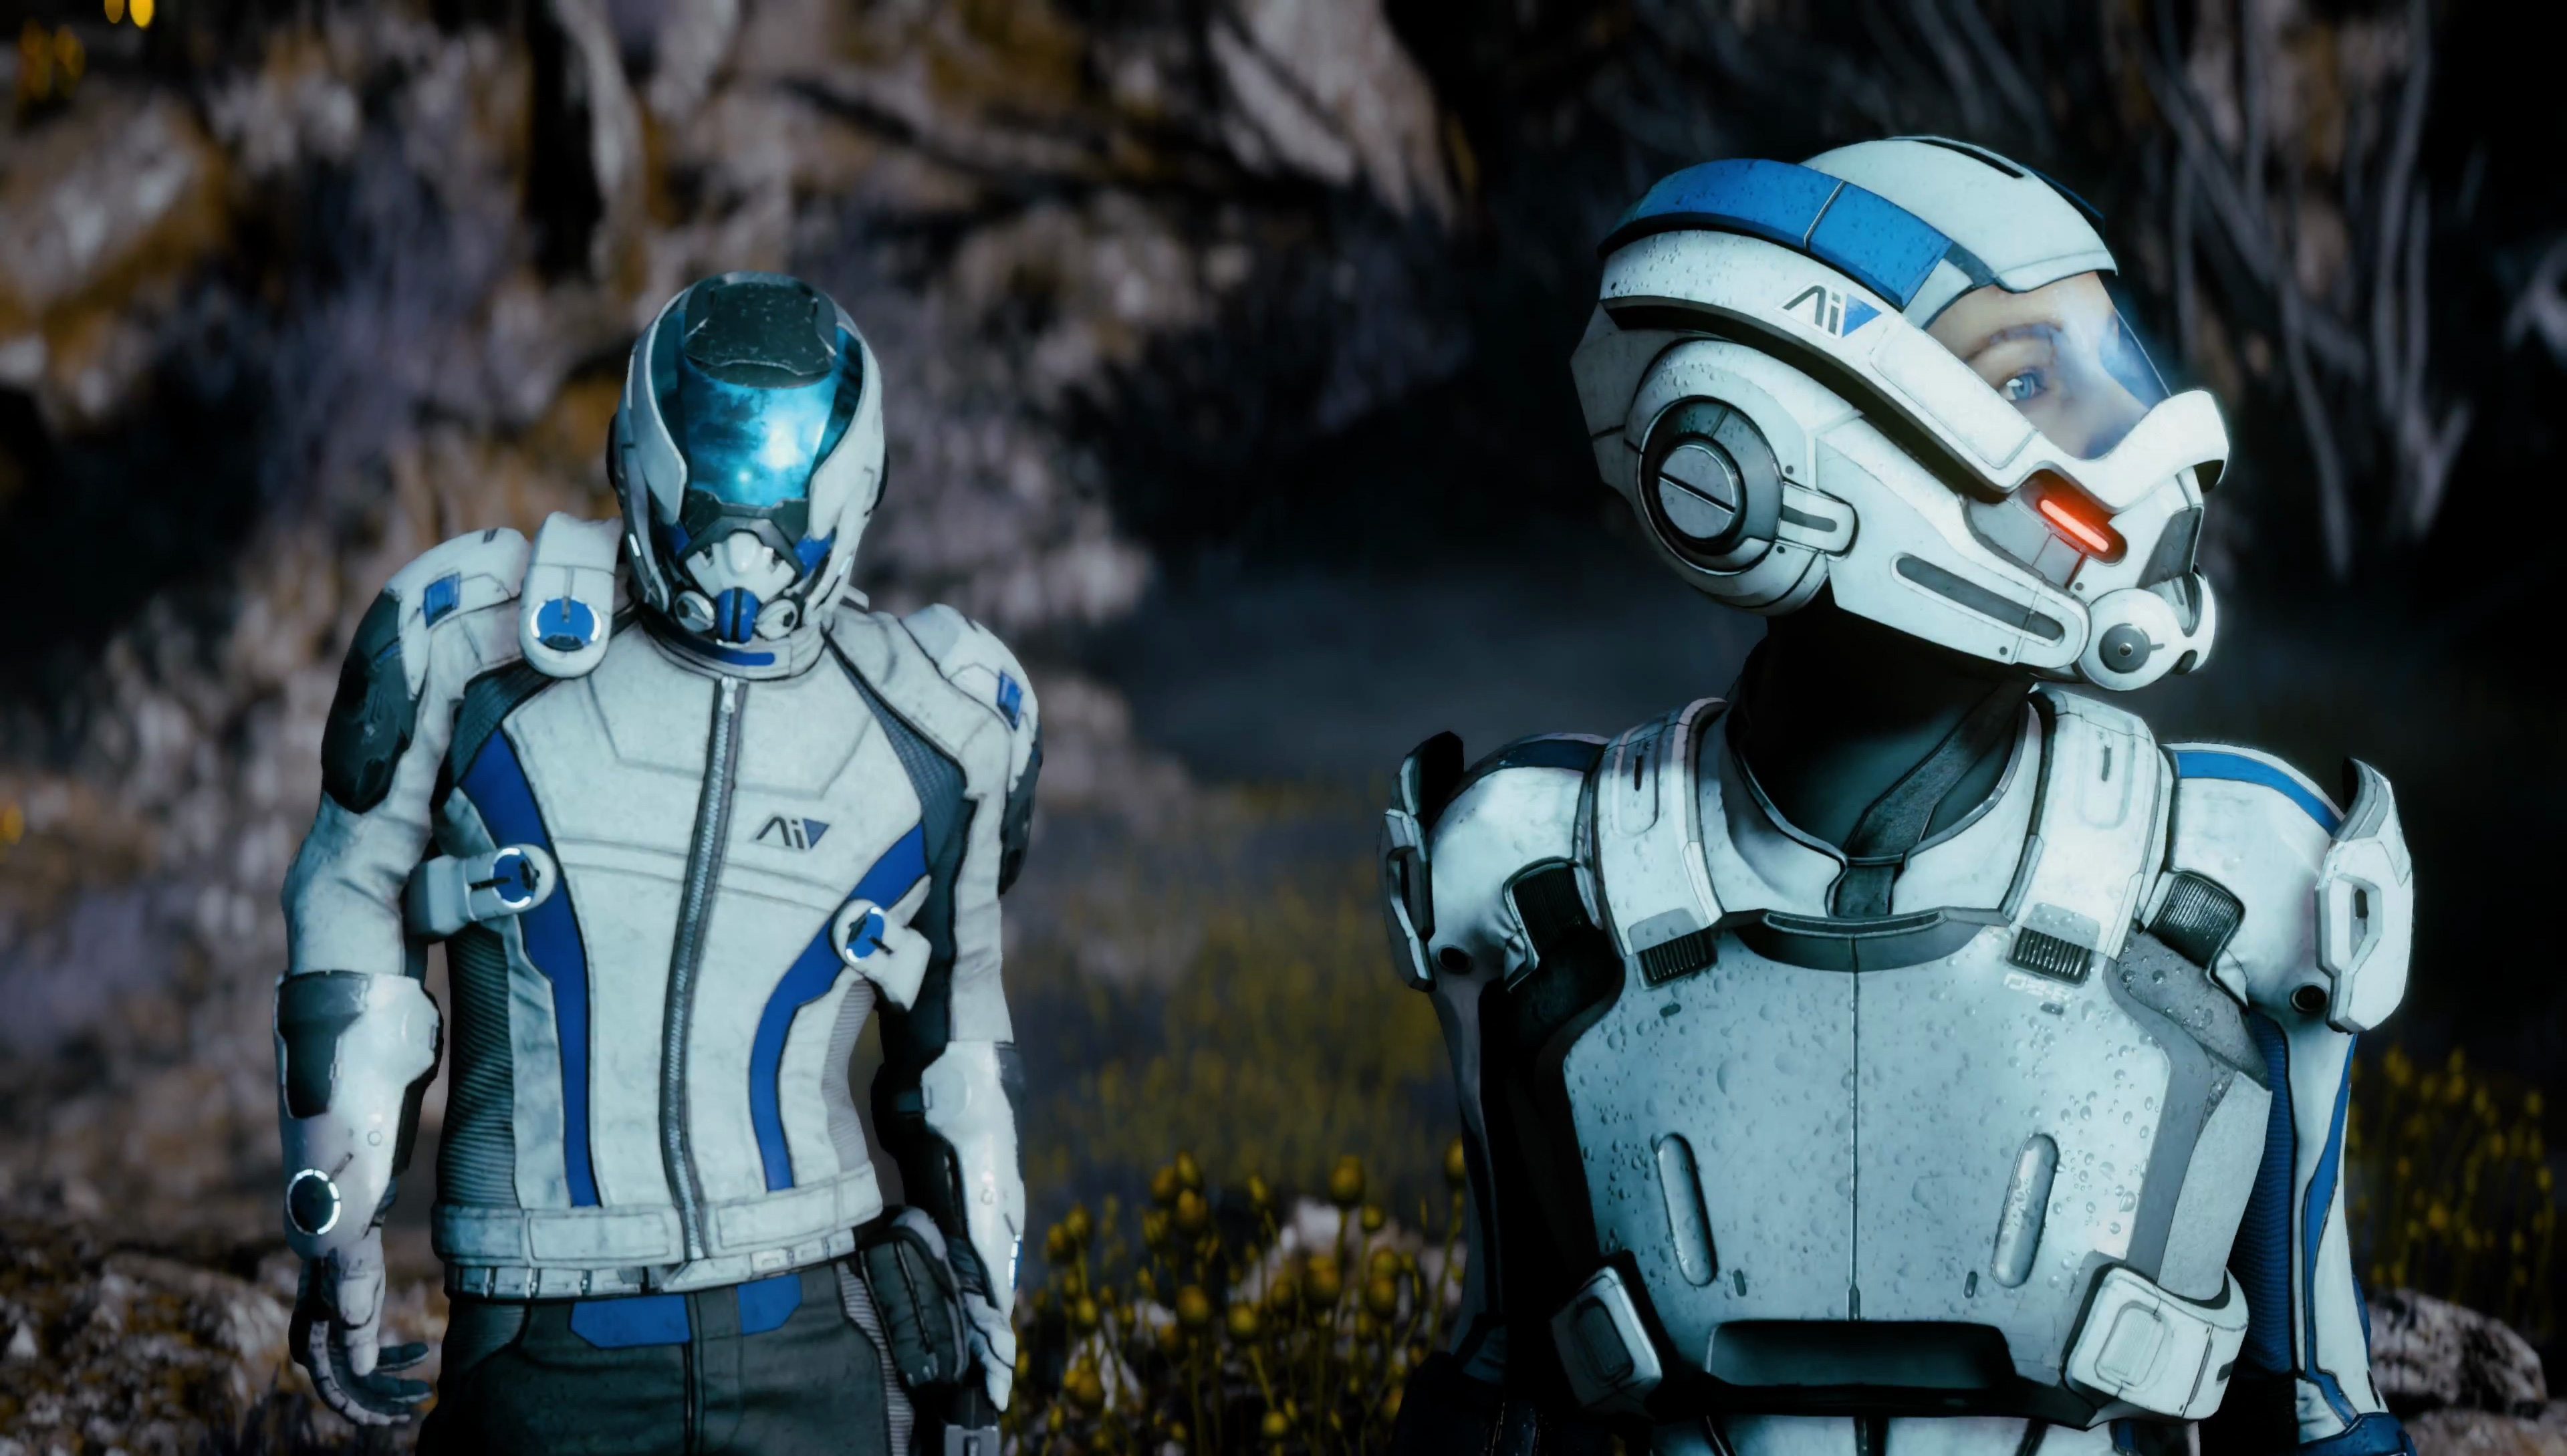 Mass Effect Andromeda Full Hd 3d Wallpapers: Mass Effect Andromeda 4k Gameplay, HD Games, 4k Wallpapers